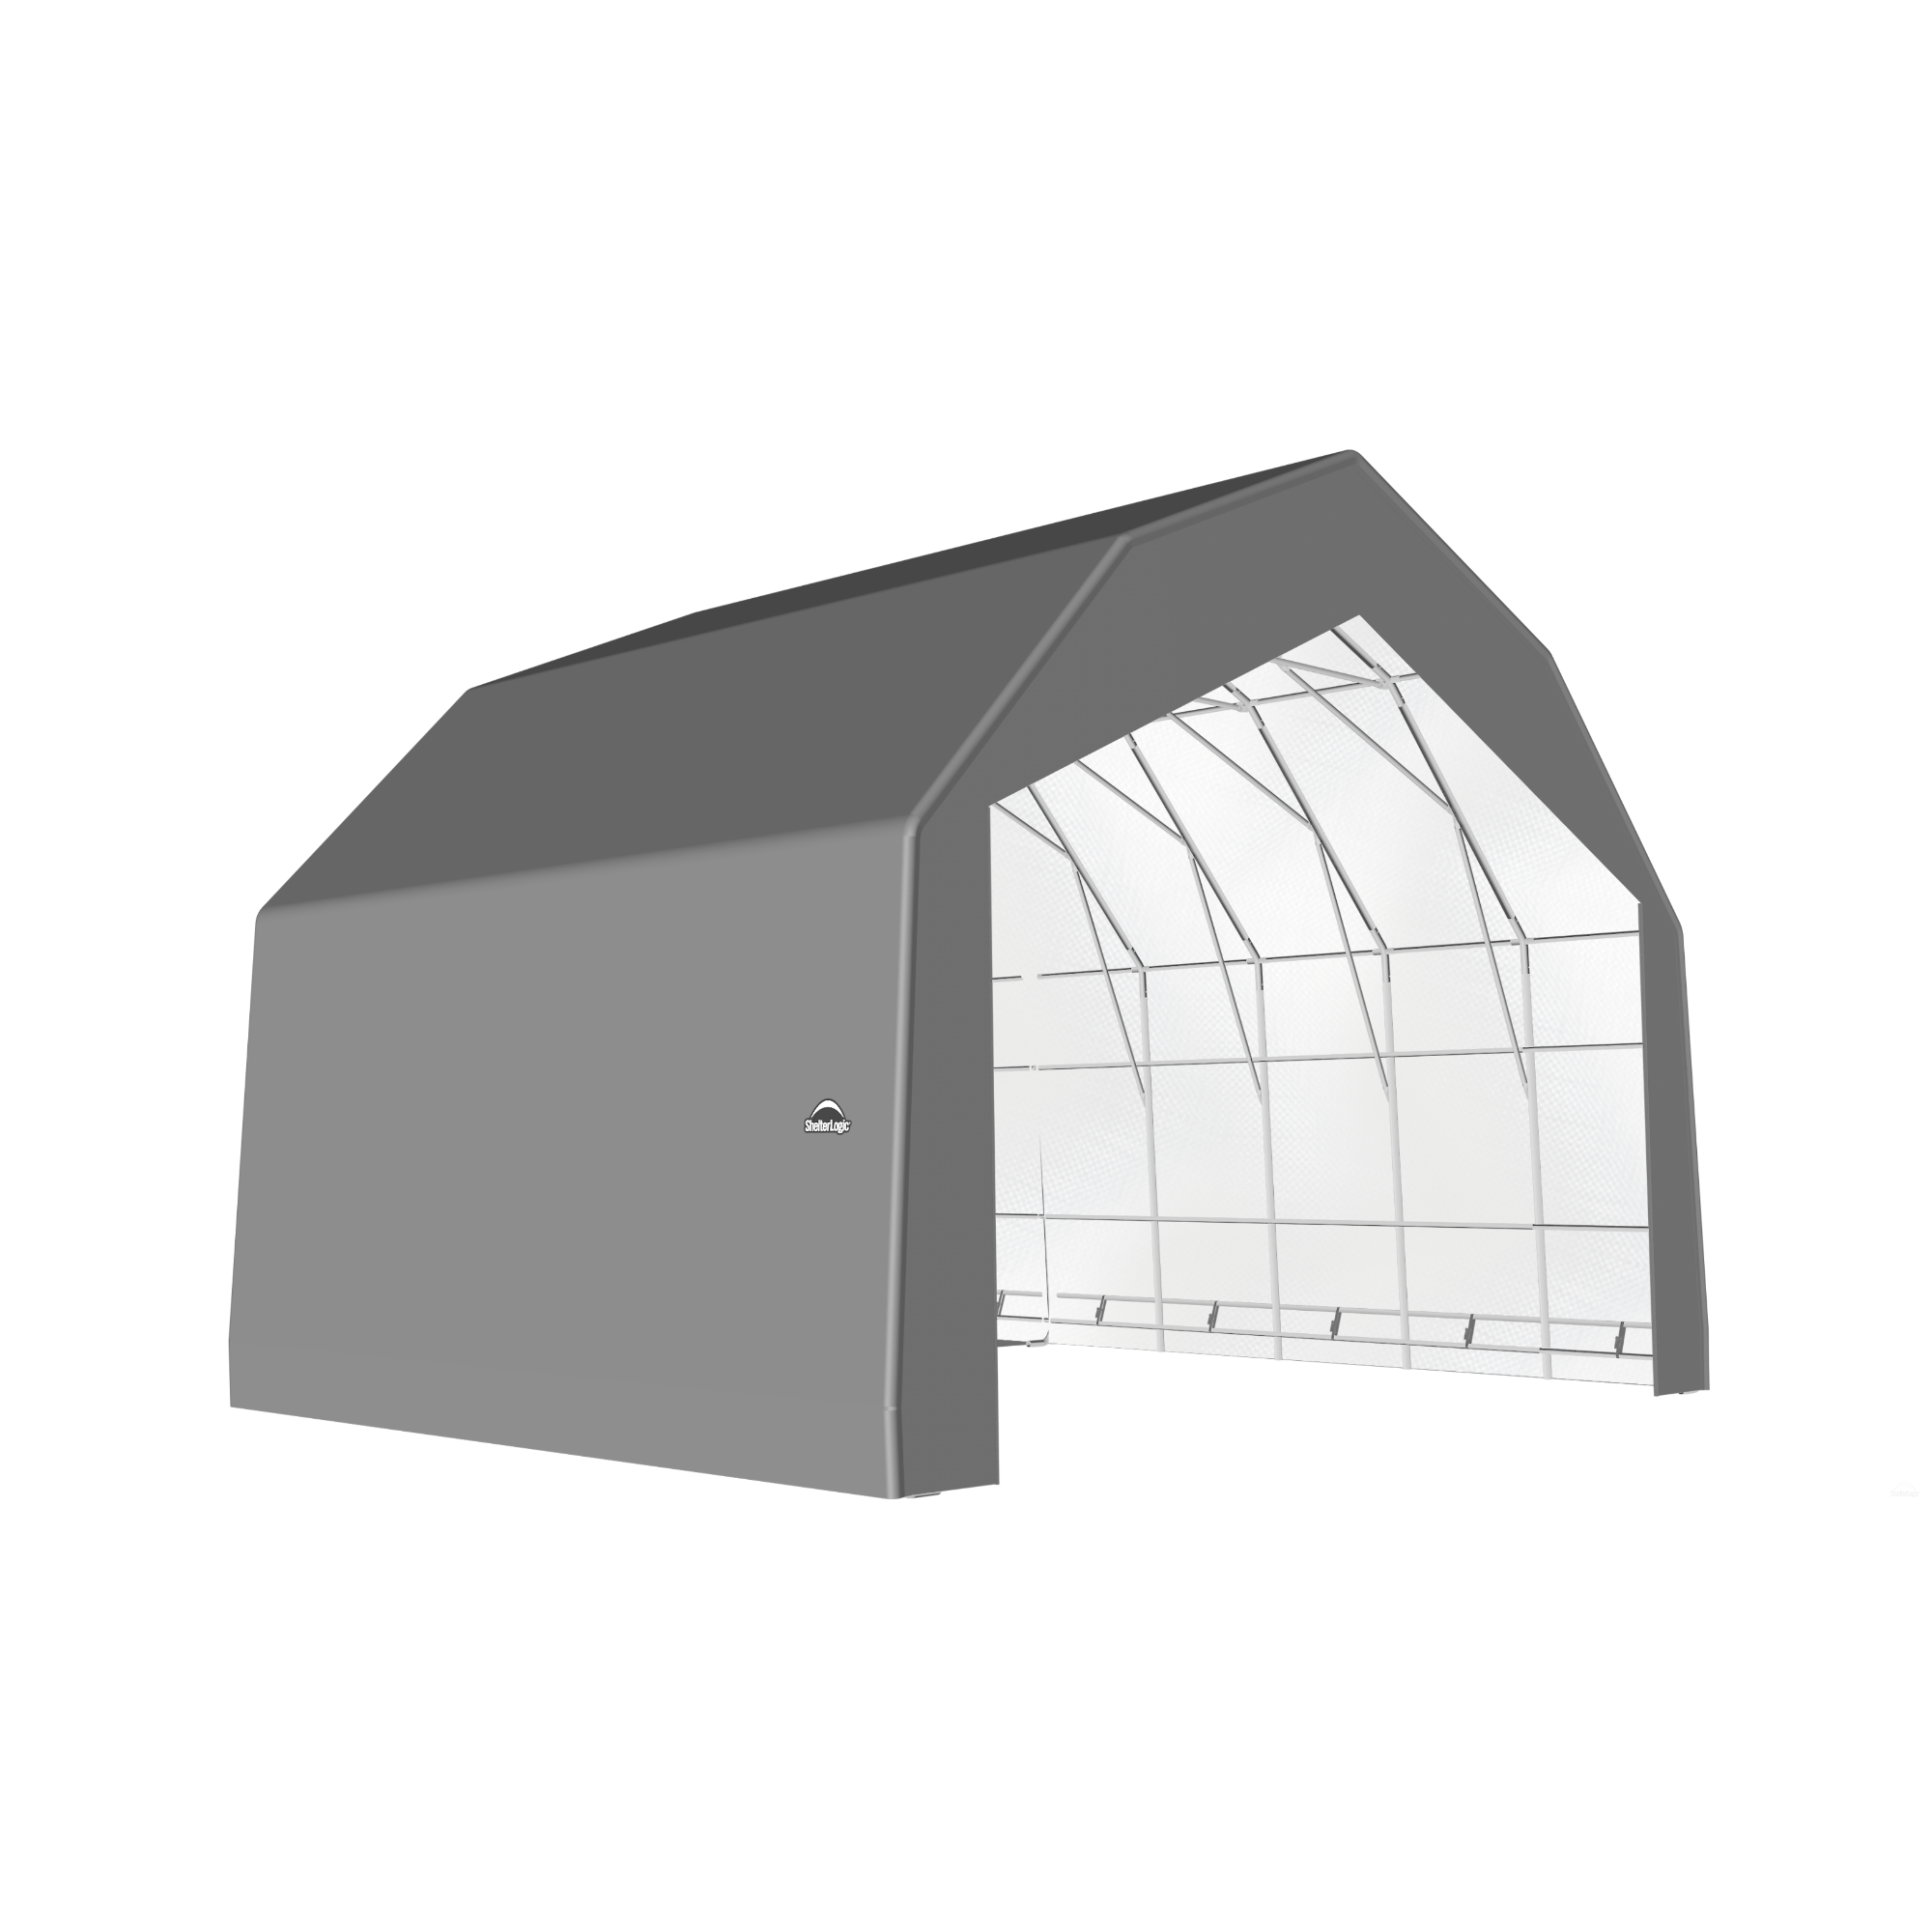 SP Barn 30X28X21 Gray 14 oz PE Shelter